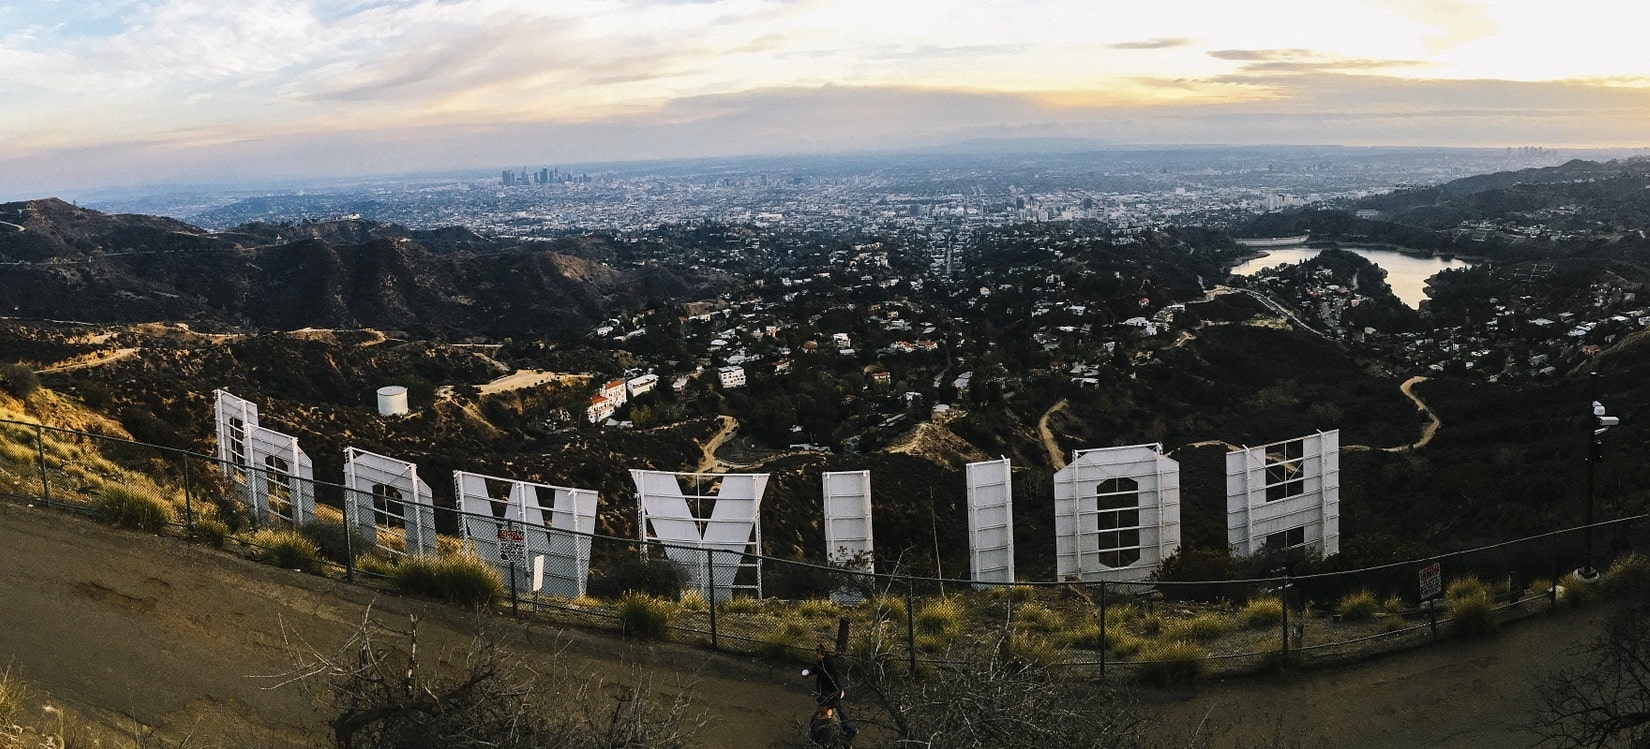 48 Hours in Los Angeles Travel Guide